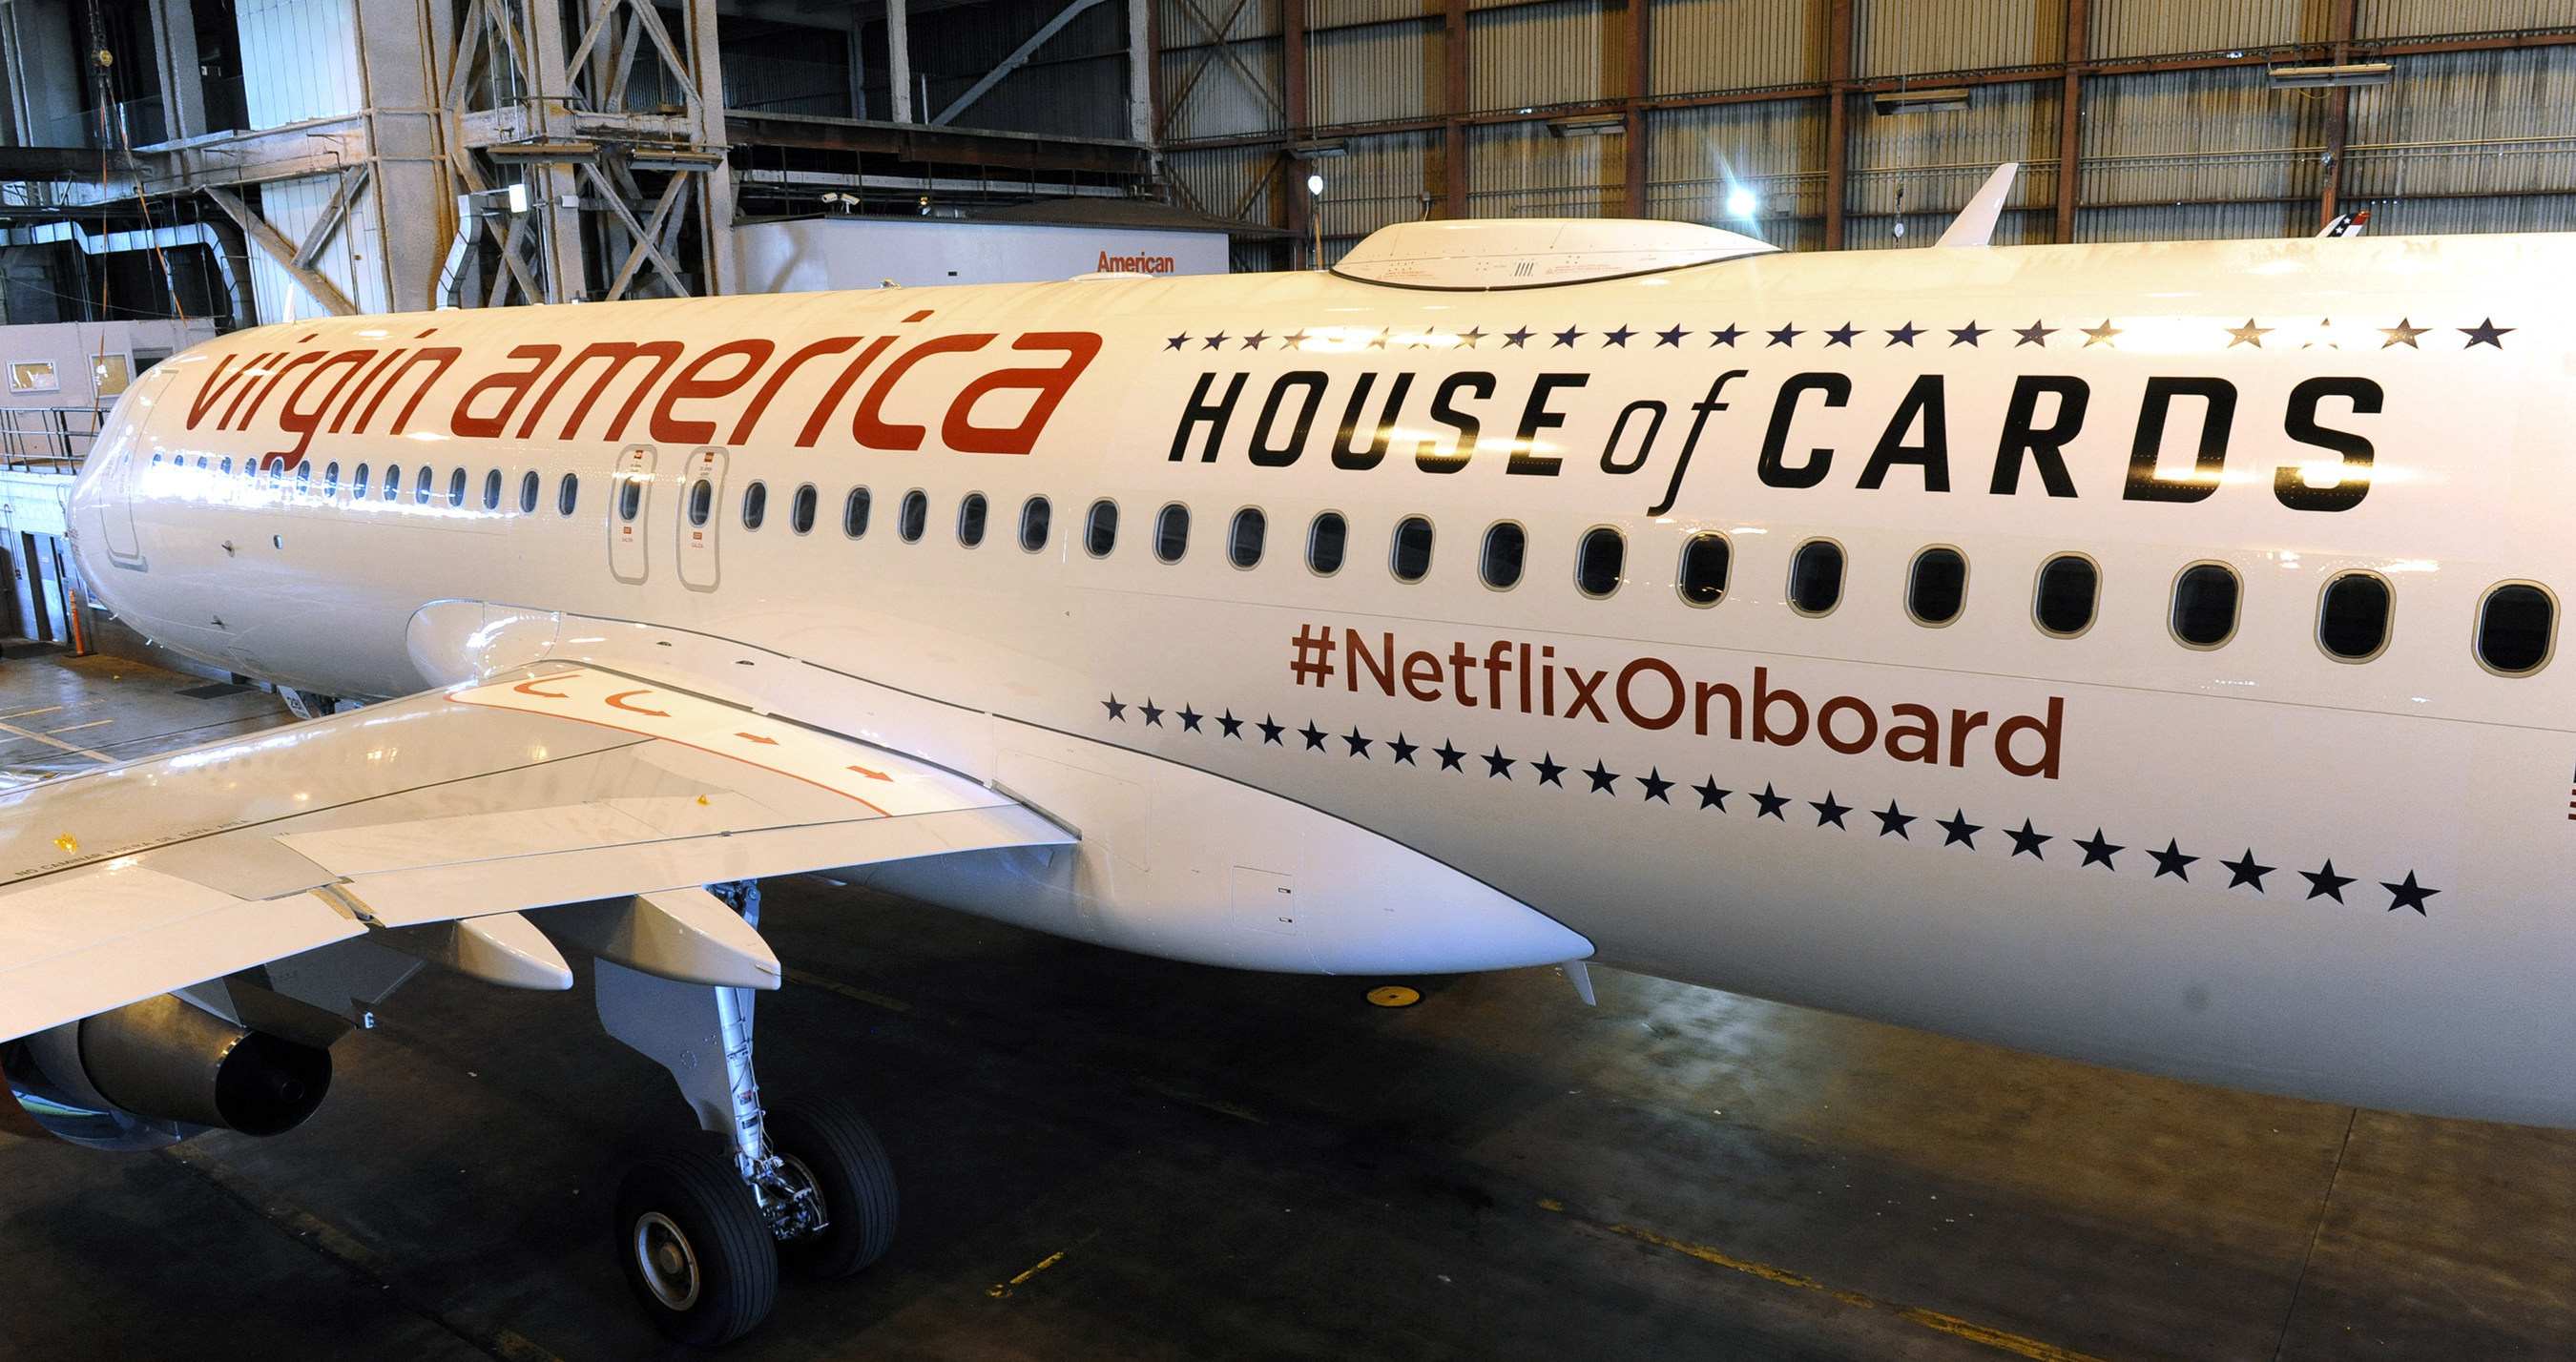 Now Streaming Netflix - At 35,000 Feet: Virgin America Teams Up With Netflix To Offer Travelers Free WiFi Access To The World's Leading Internet TV Network